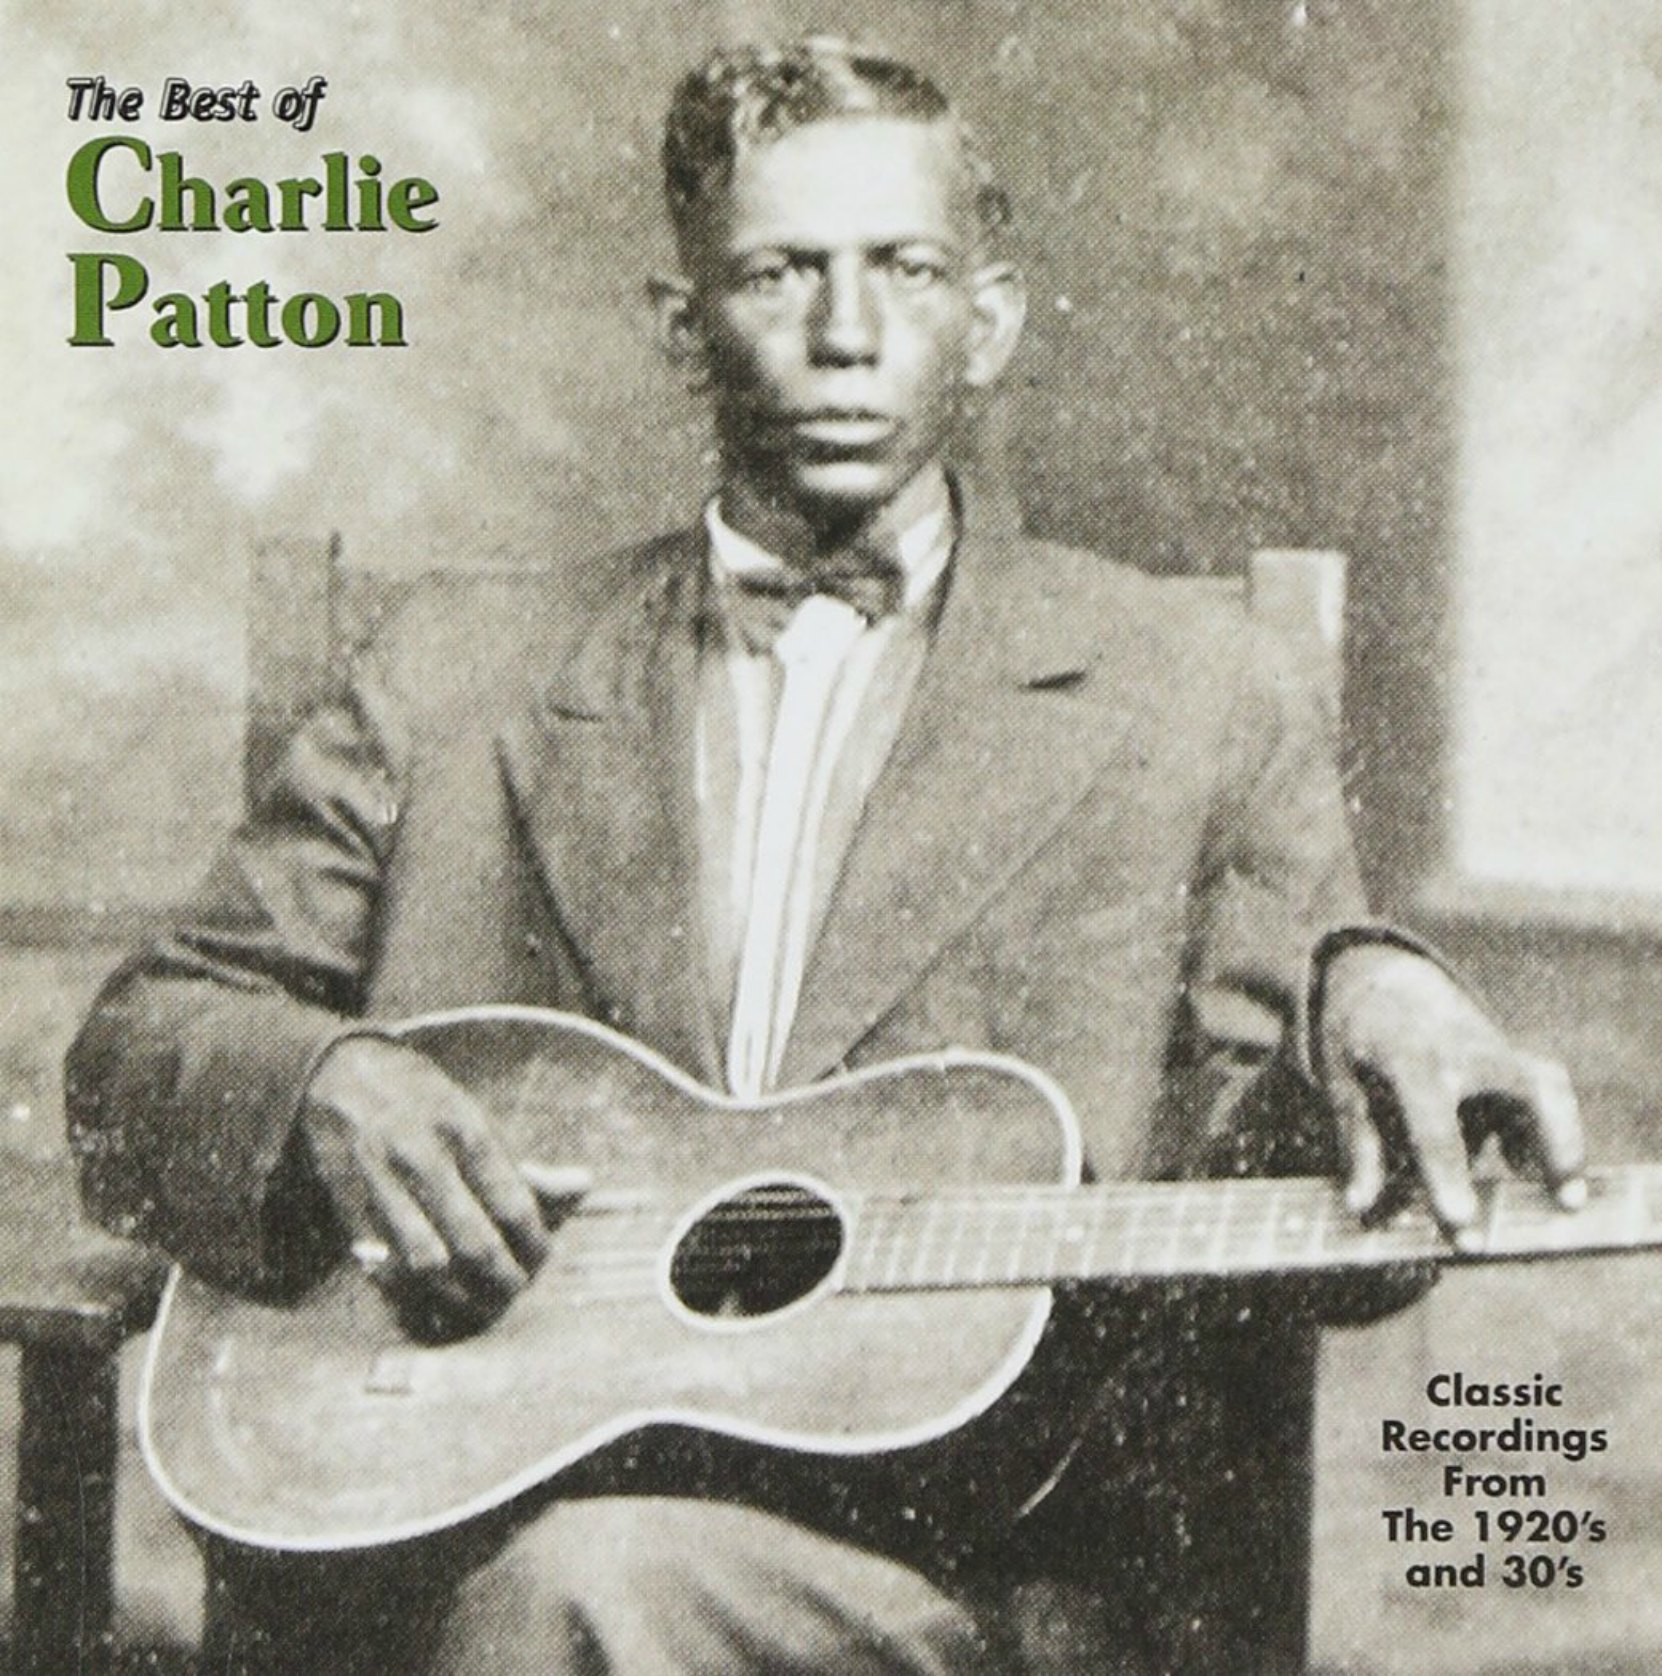 CD cover, The Best of Charlie patton, released on Yazoo Records